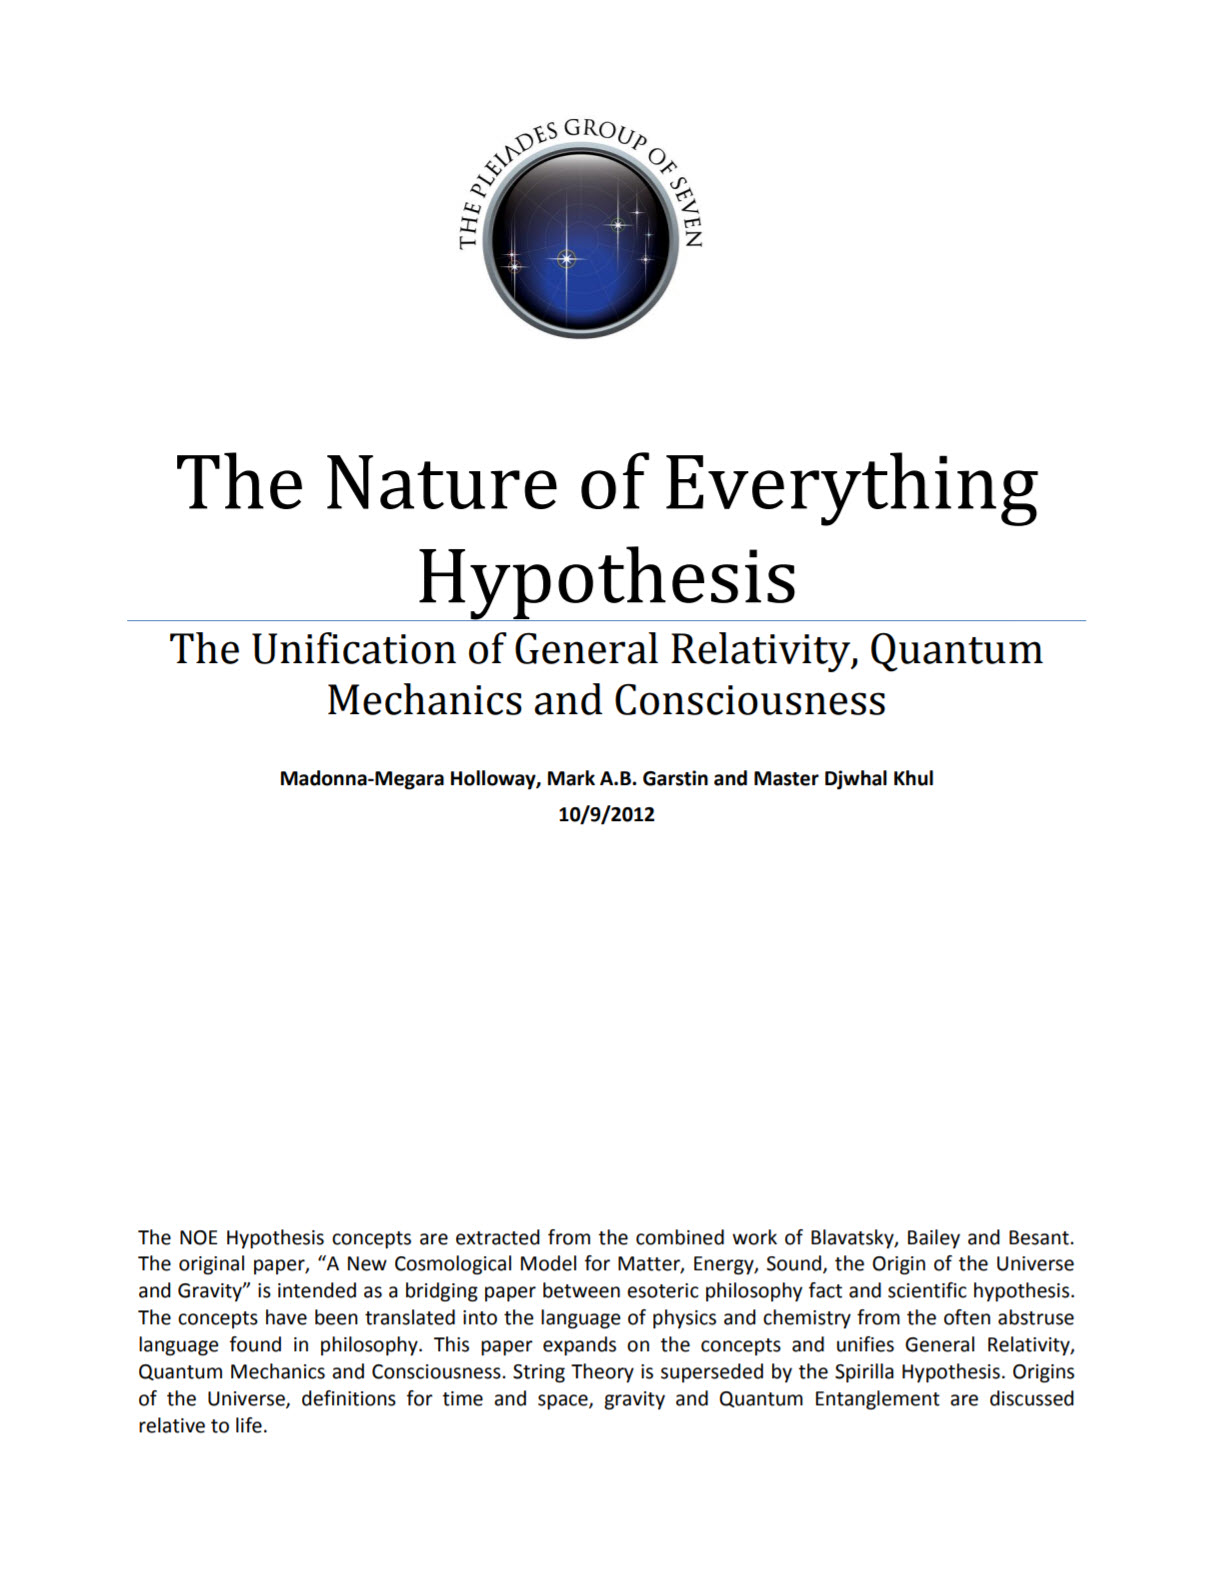 The Nature of Everything Hypothesis - 2012